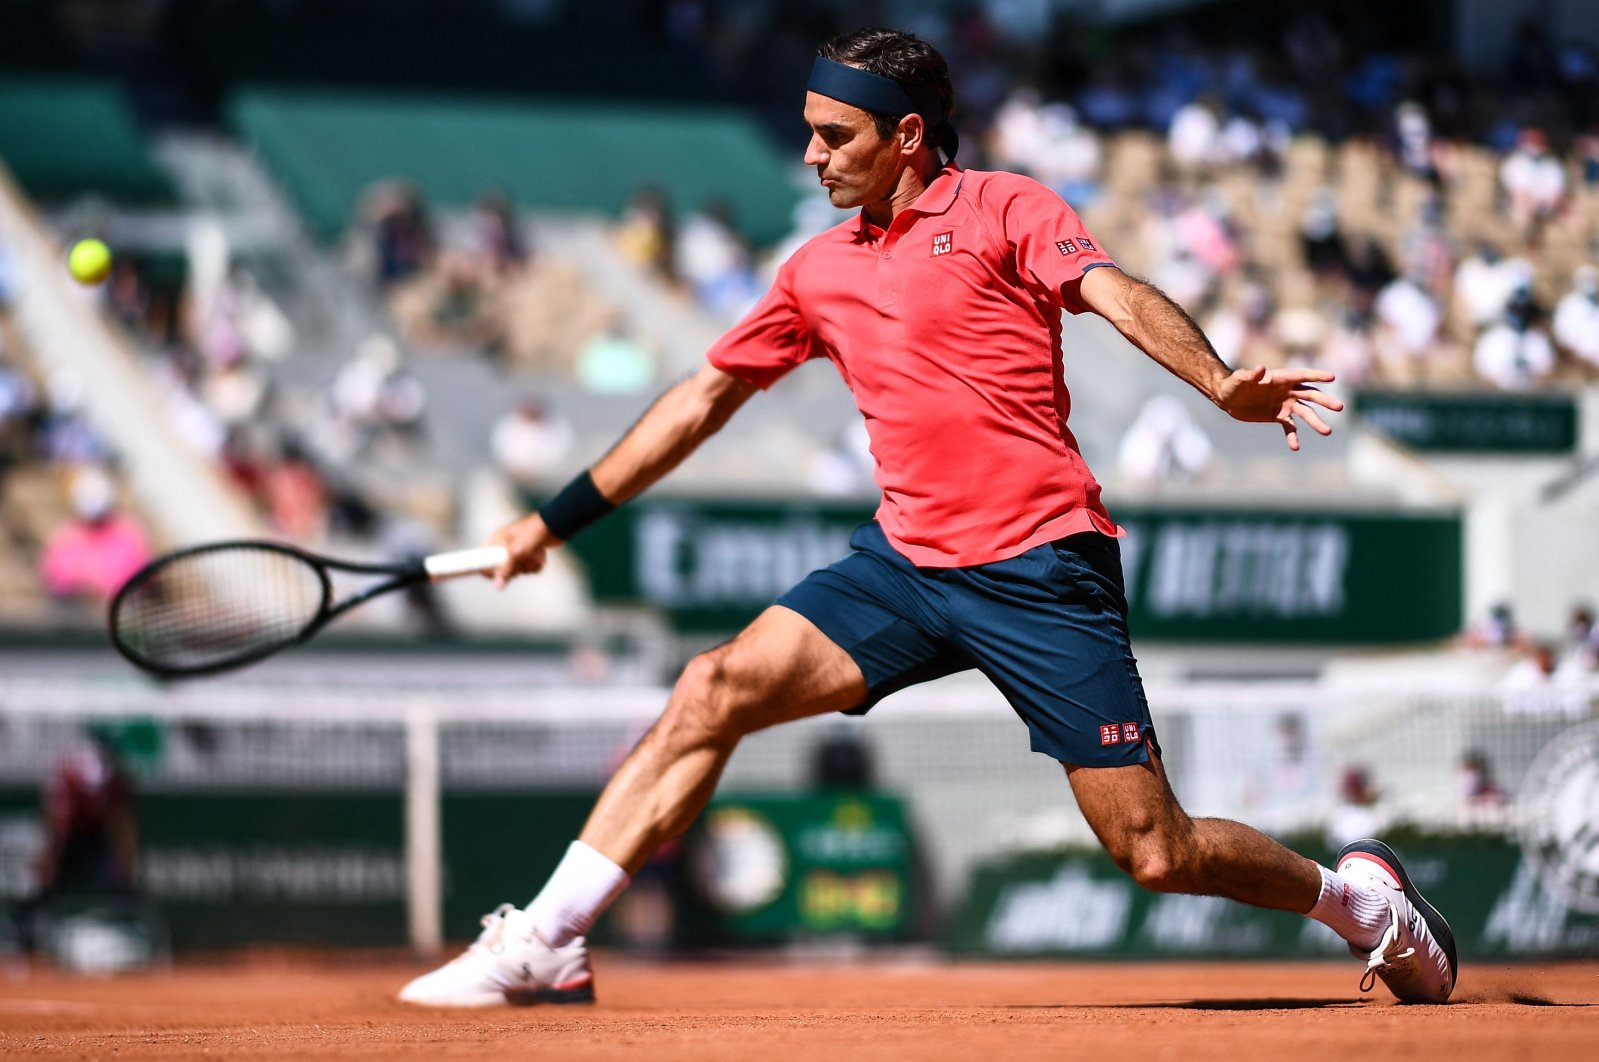 Switzerland's Roger Federer returns the ball to Uzbekistan's Denis Istomin during their French Open first-round match at Roland Garros, Paris, France, May 31, 2021. (AFP Photo)